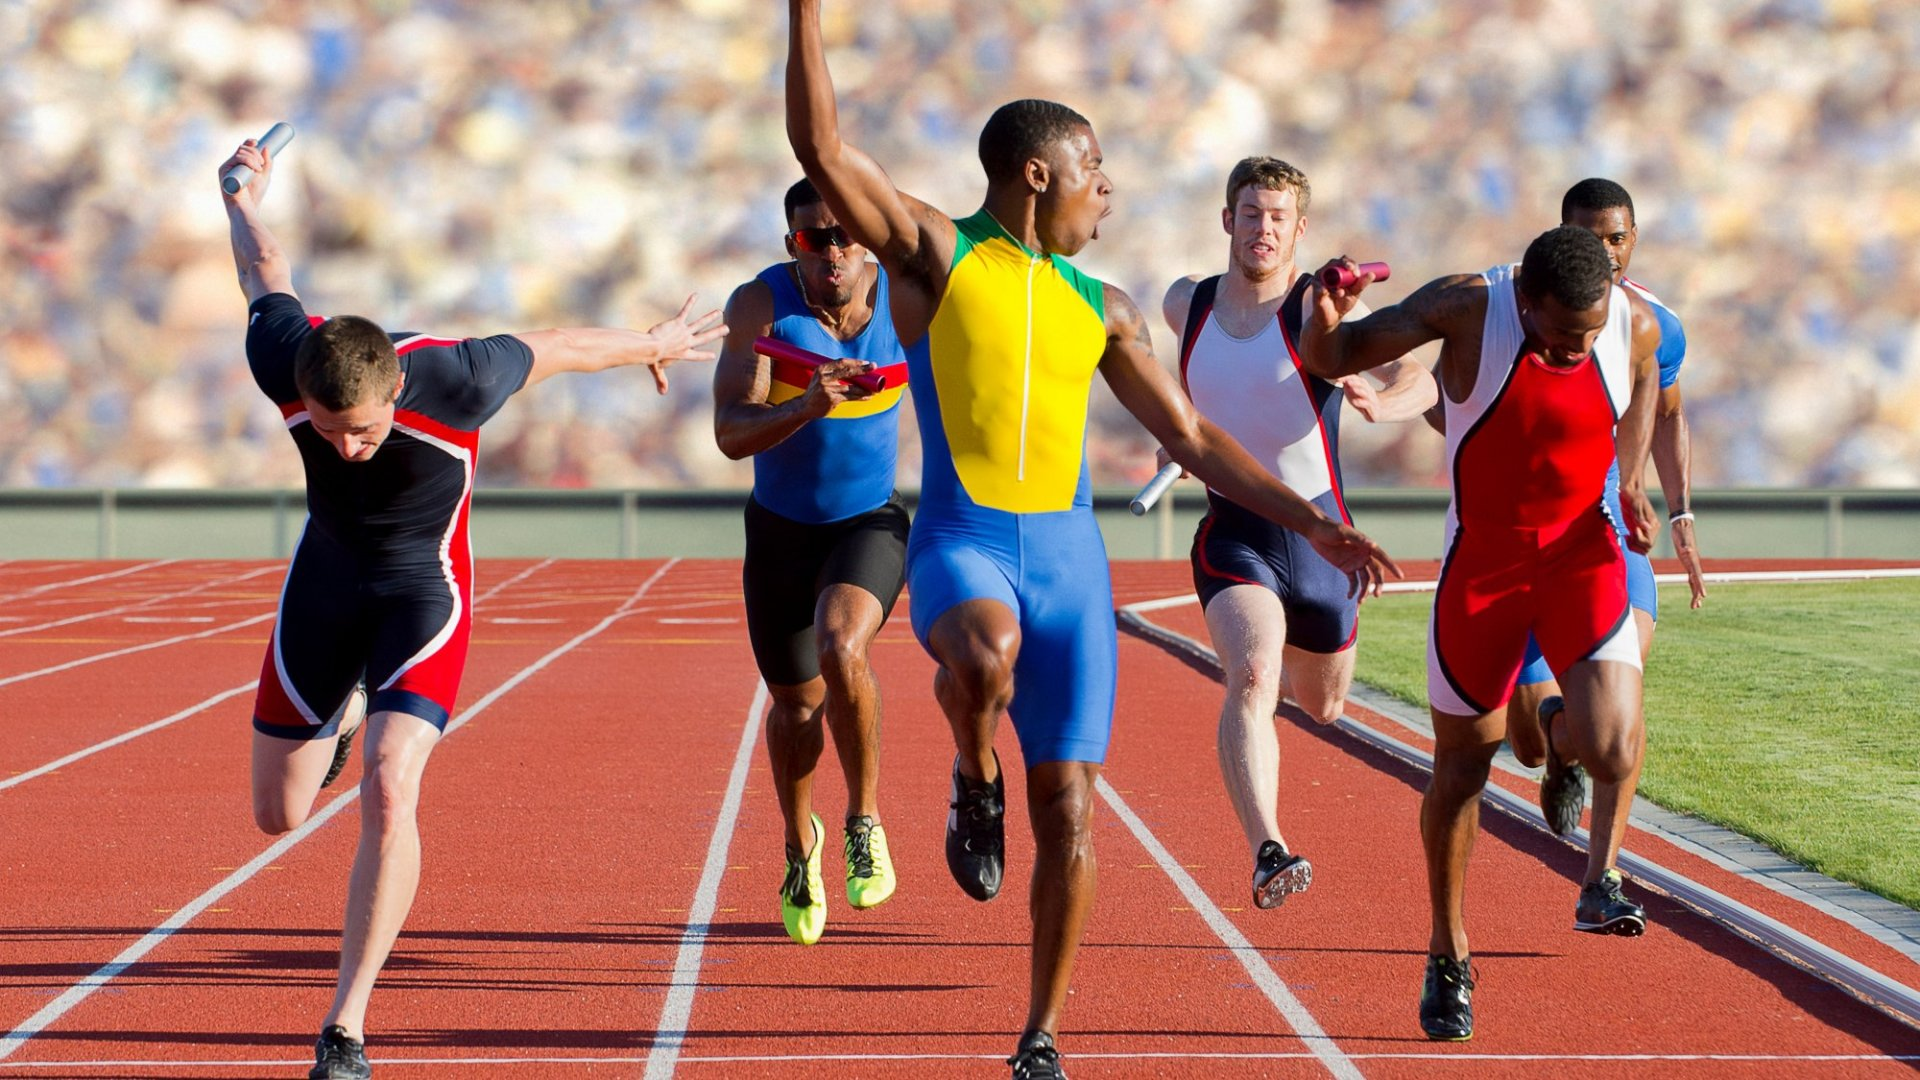 5 Ways to Keep Your Biggest Competitor at Bay